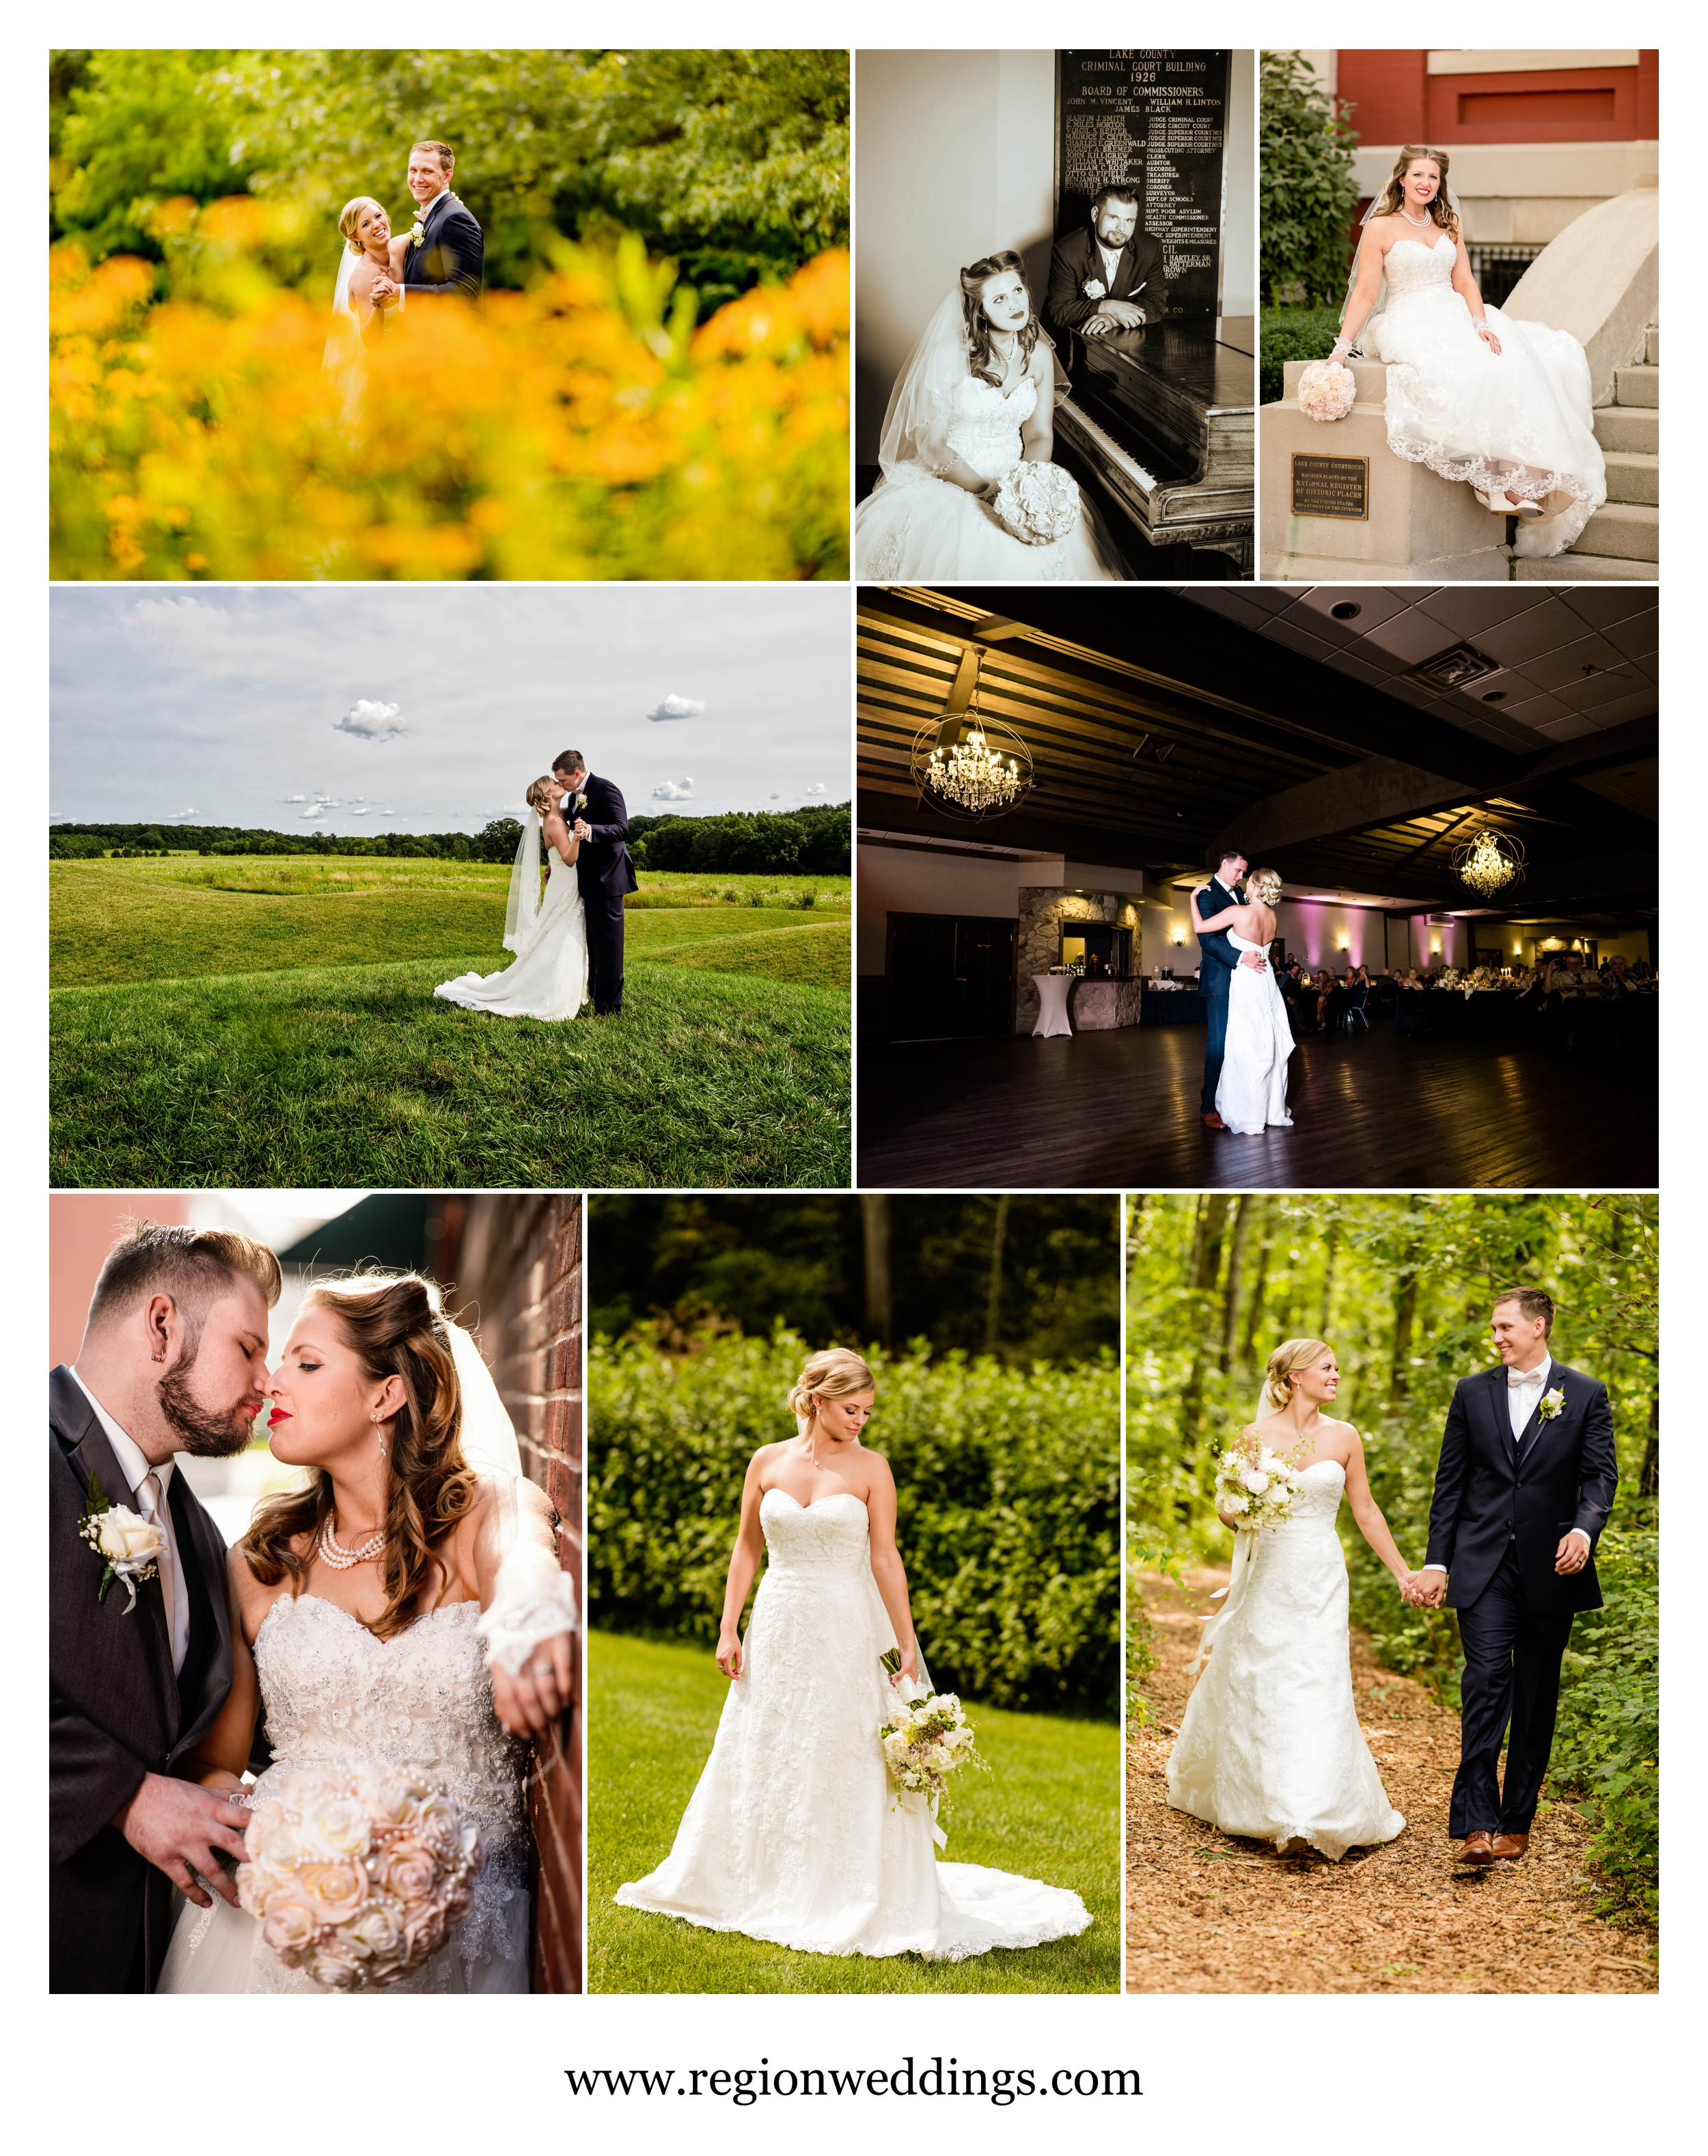 August weddings in Crown Point and Valparaiso.